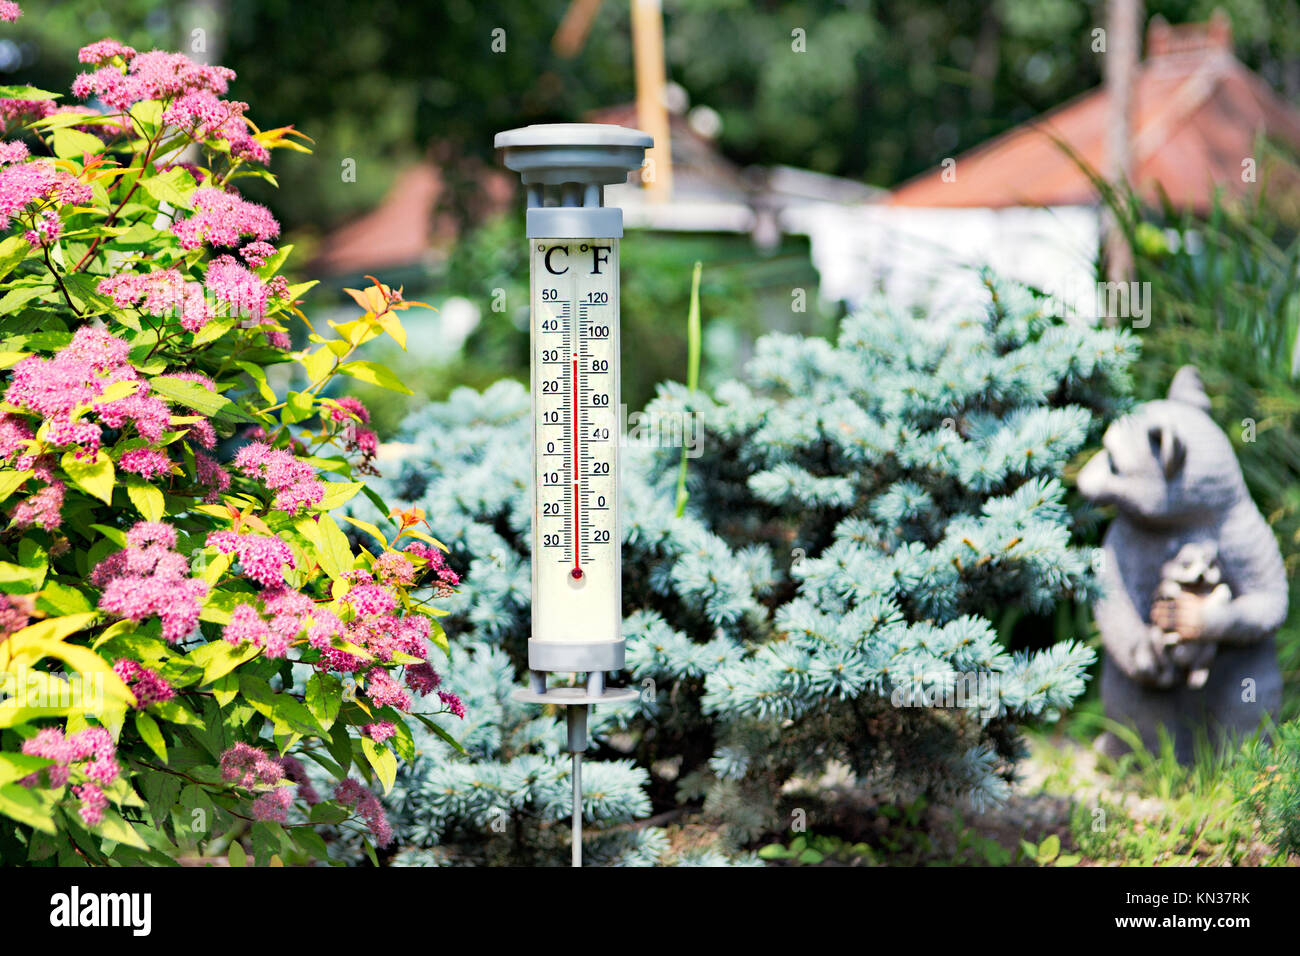 Outdoor Thermometer Stock Photos & Outdoor Thermometer Stock Images ...